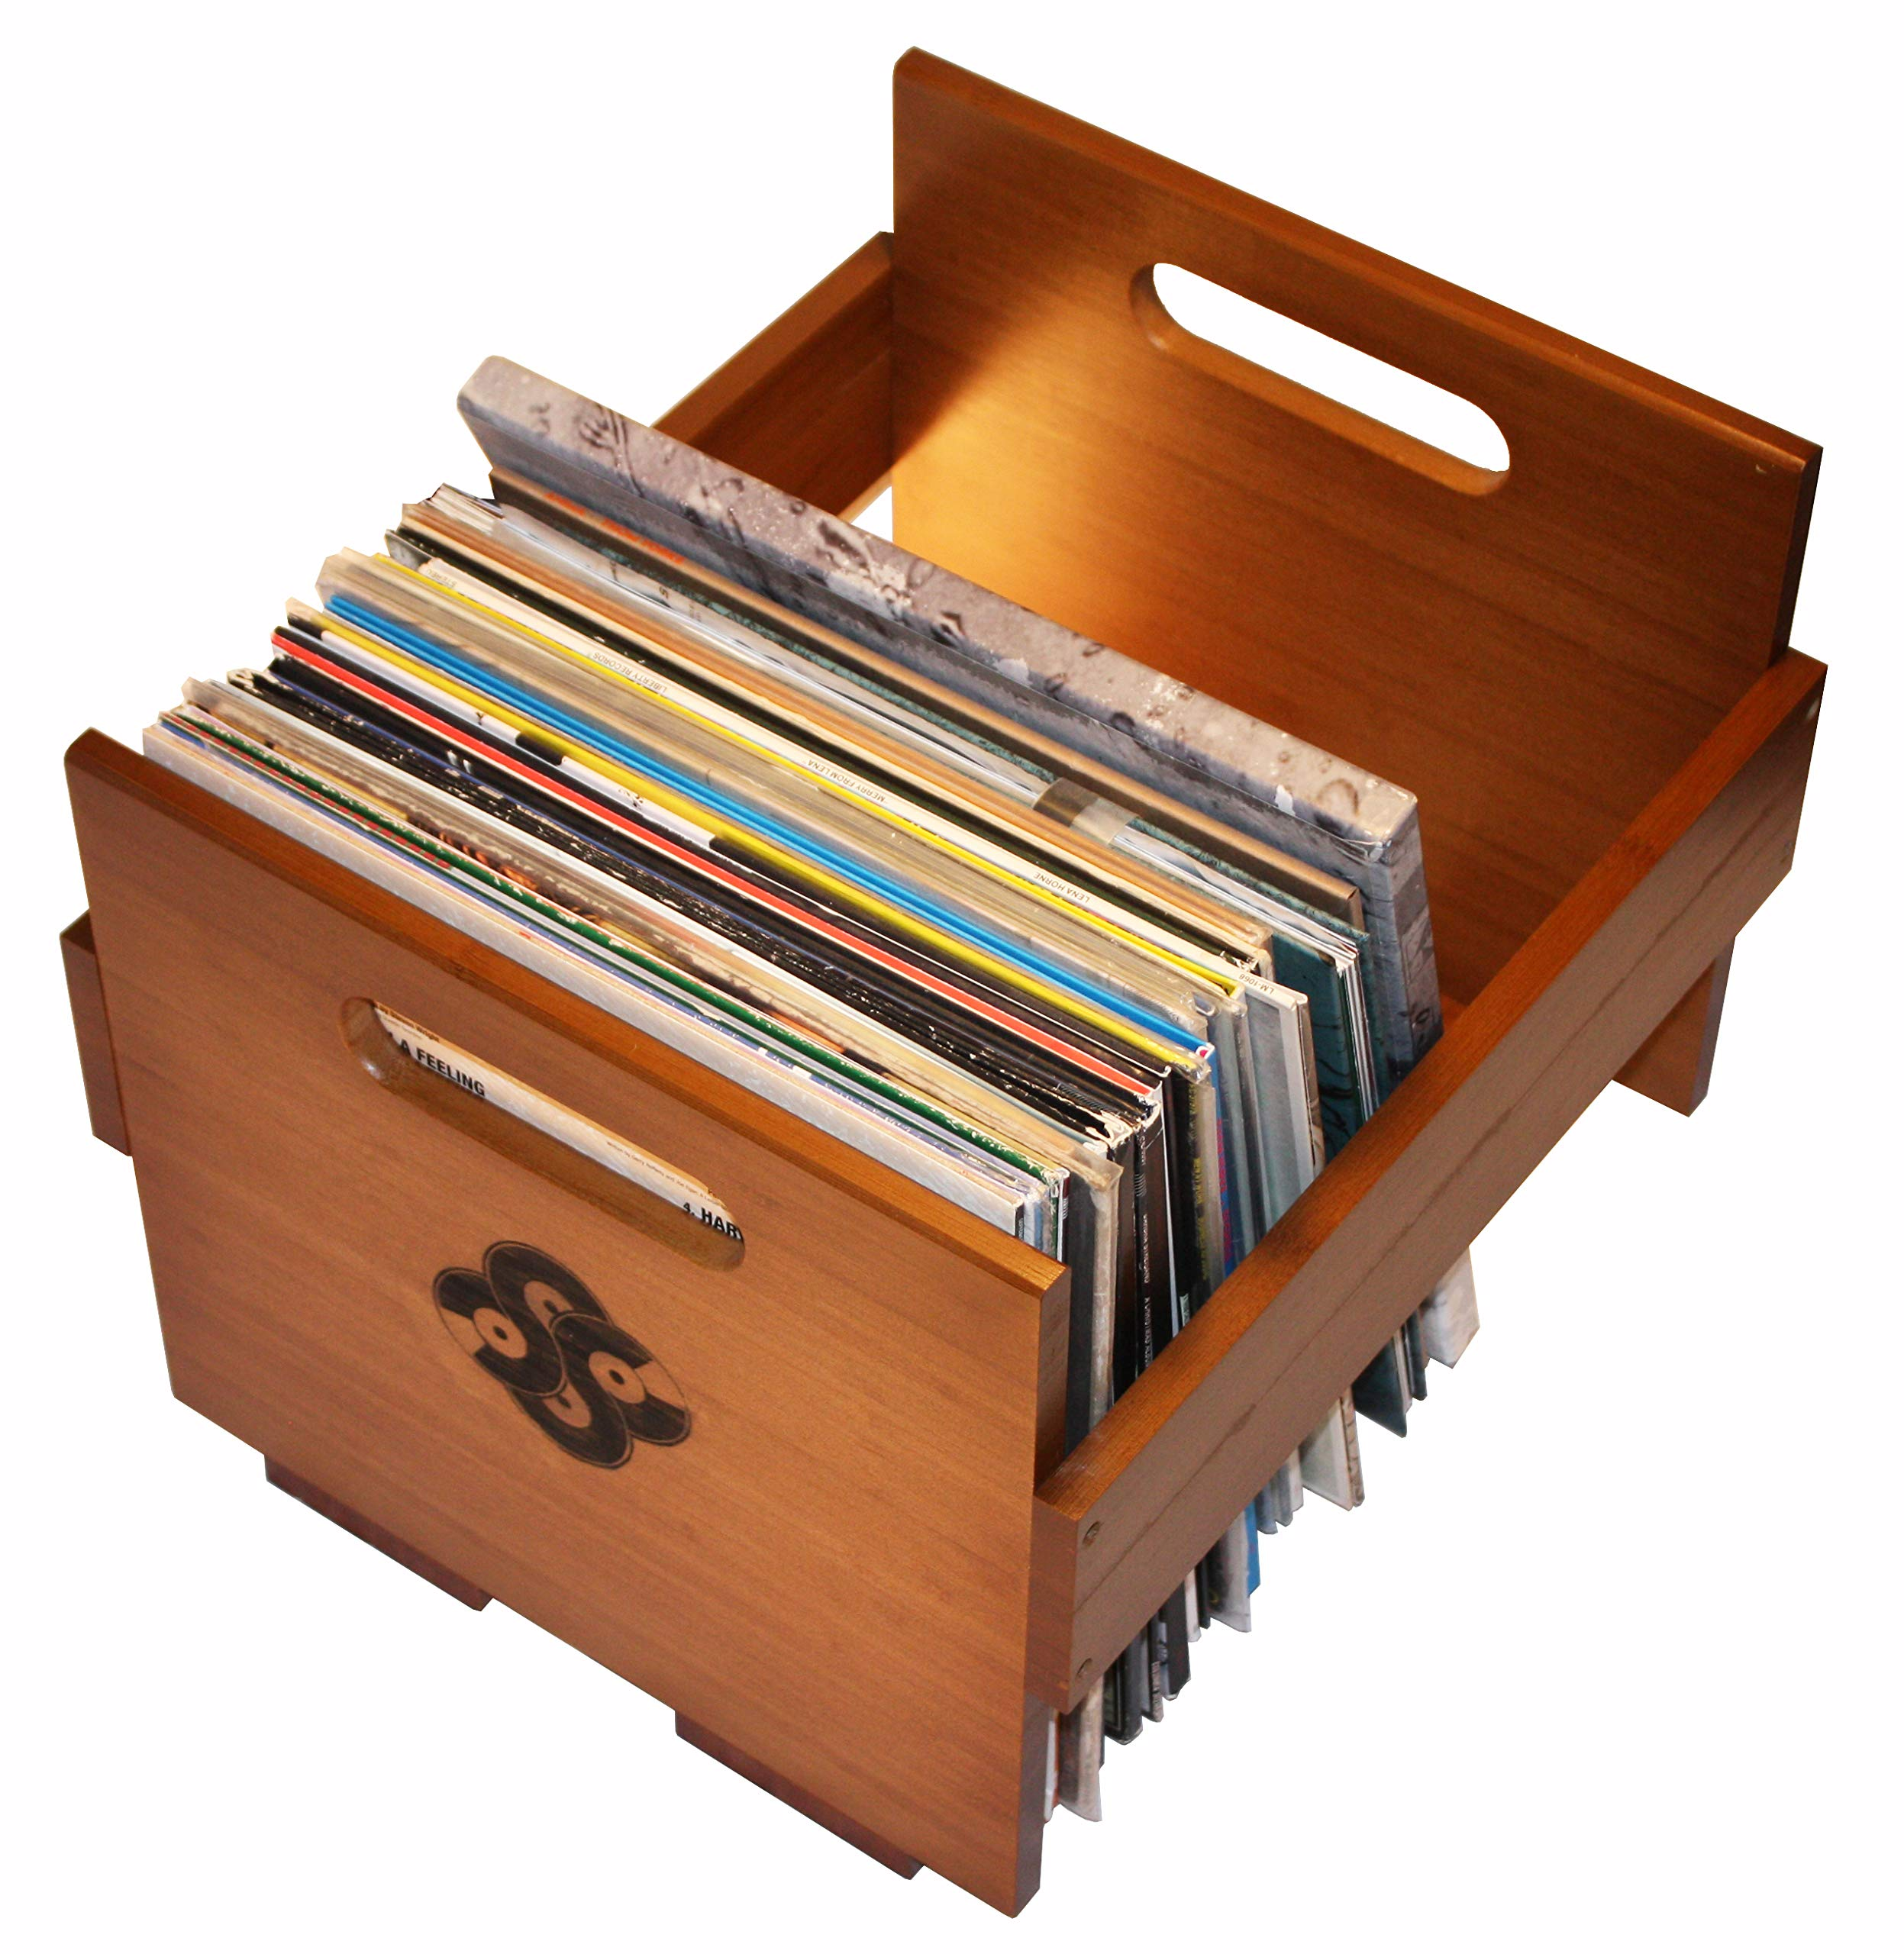 Sound Stash Vinyl Record Storage, Smooth Solid Bamboo Wood Crate, Holds Over 80 Records, Record Holder, Vinyl Organizer, Album Milk Crate, Vinyl Record Holder by Sound Stash